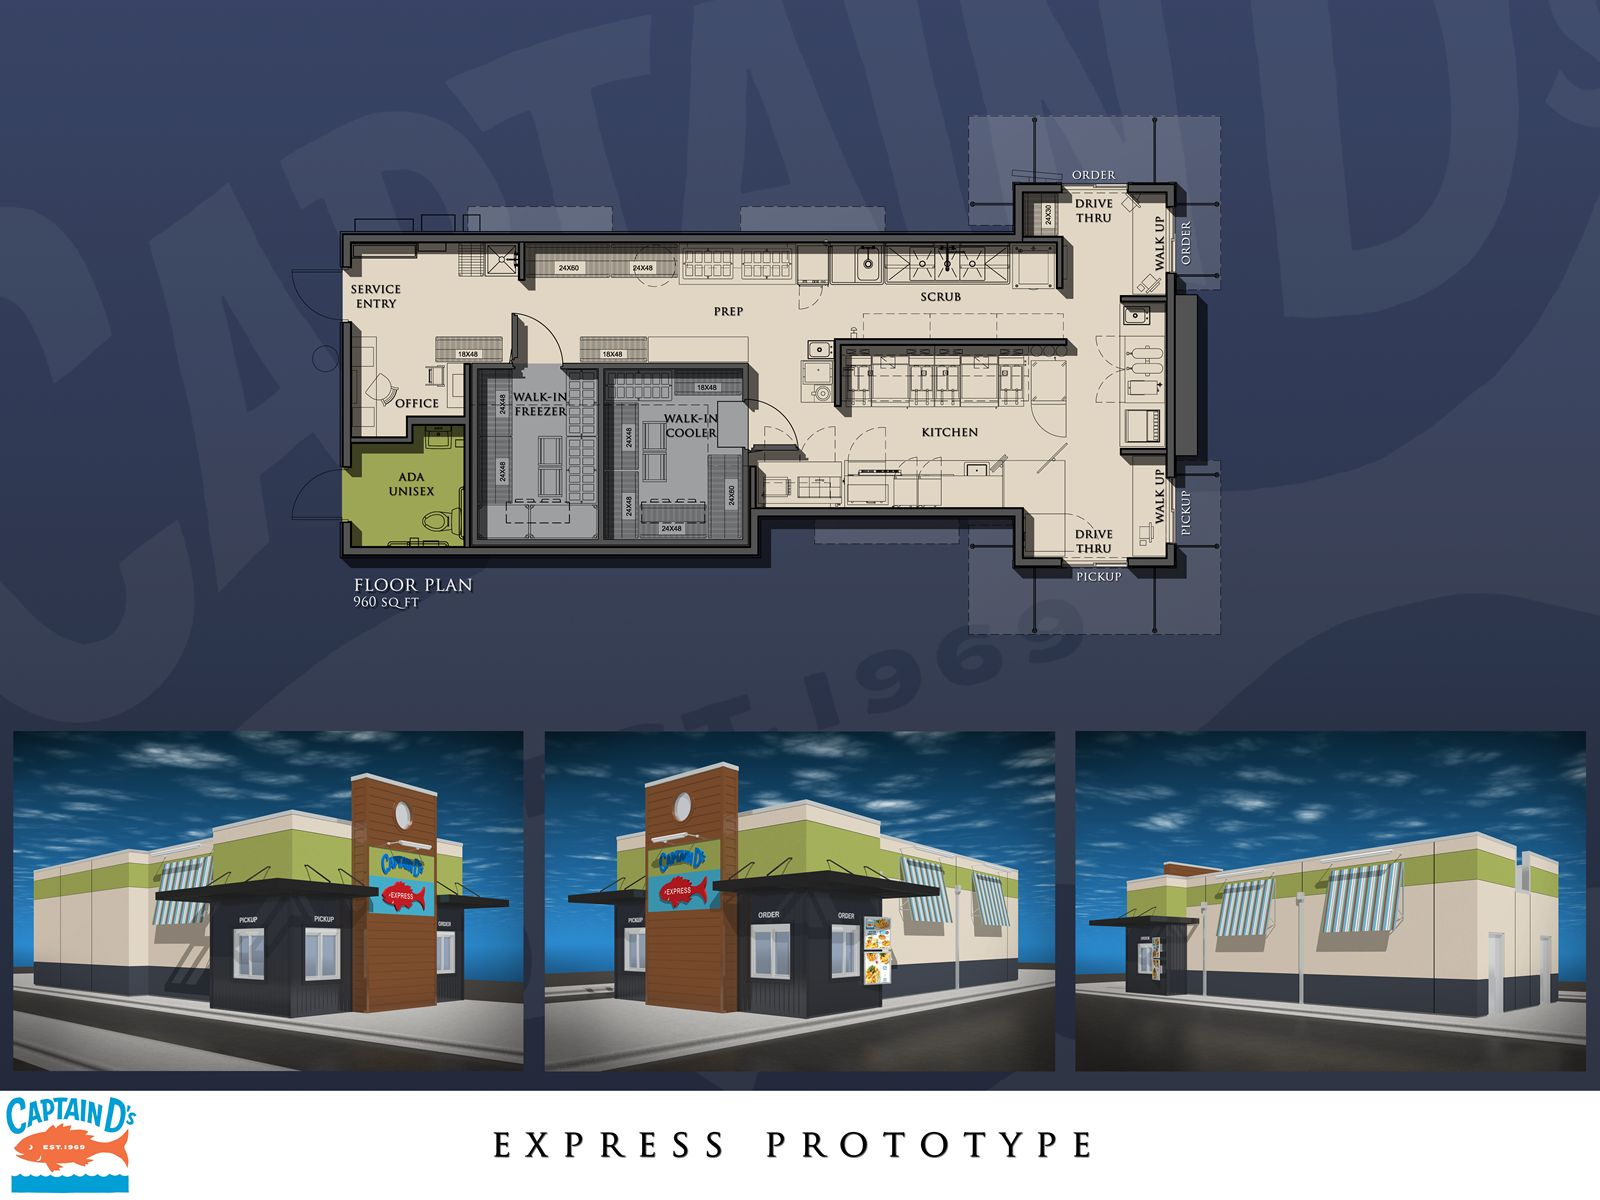 Captain D's Unveils Innovative New 'Express' Restaurant Prototype to Drive Franchise Development in Untapped Markets